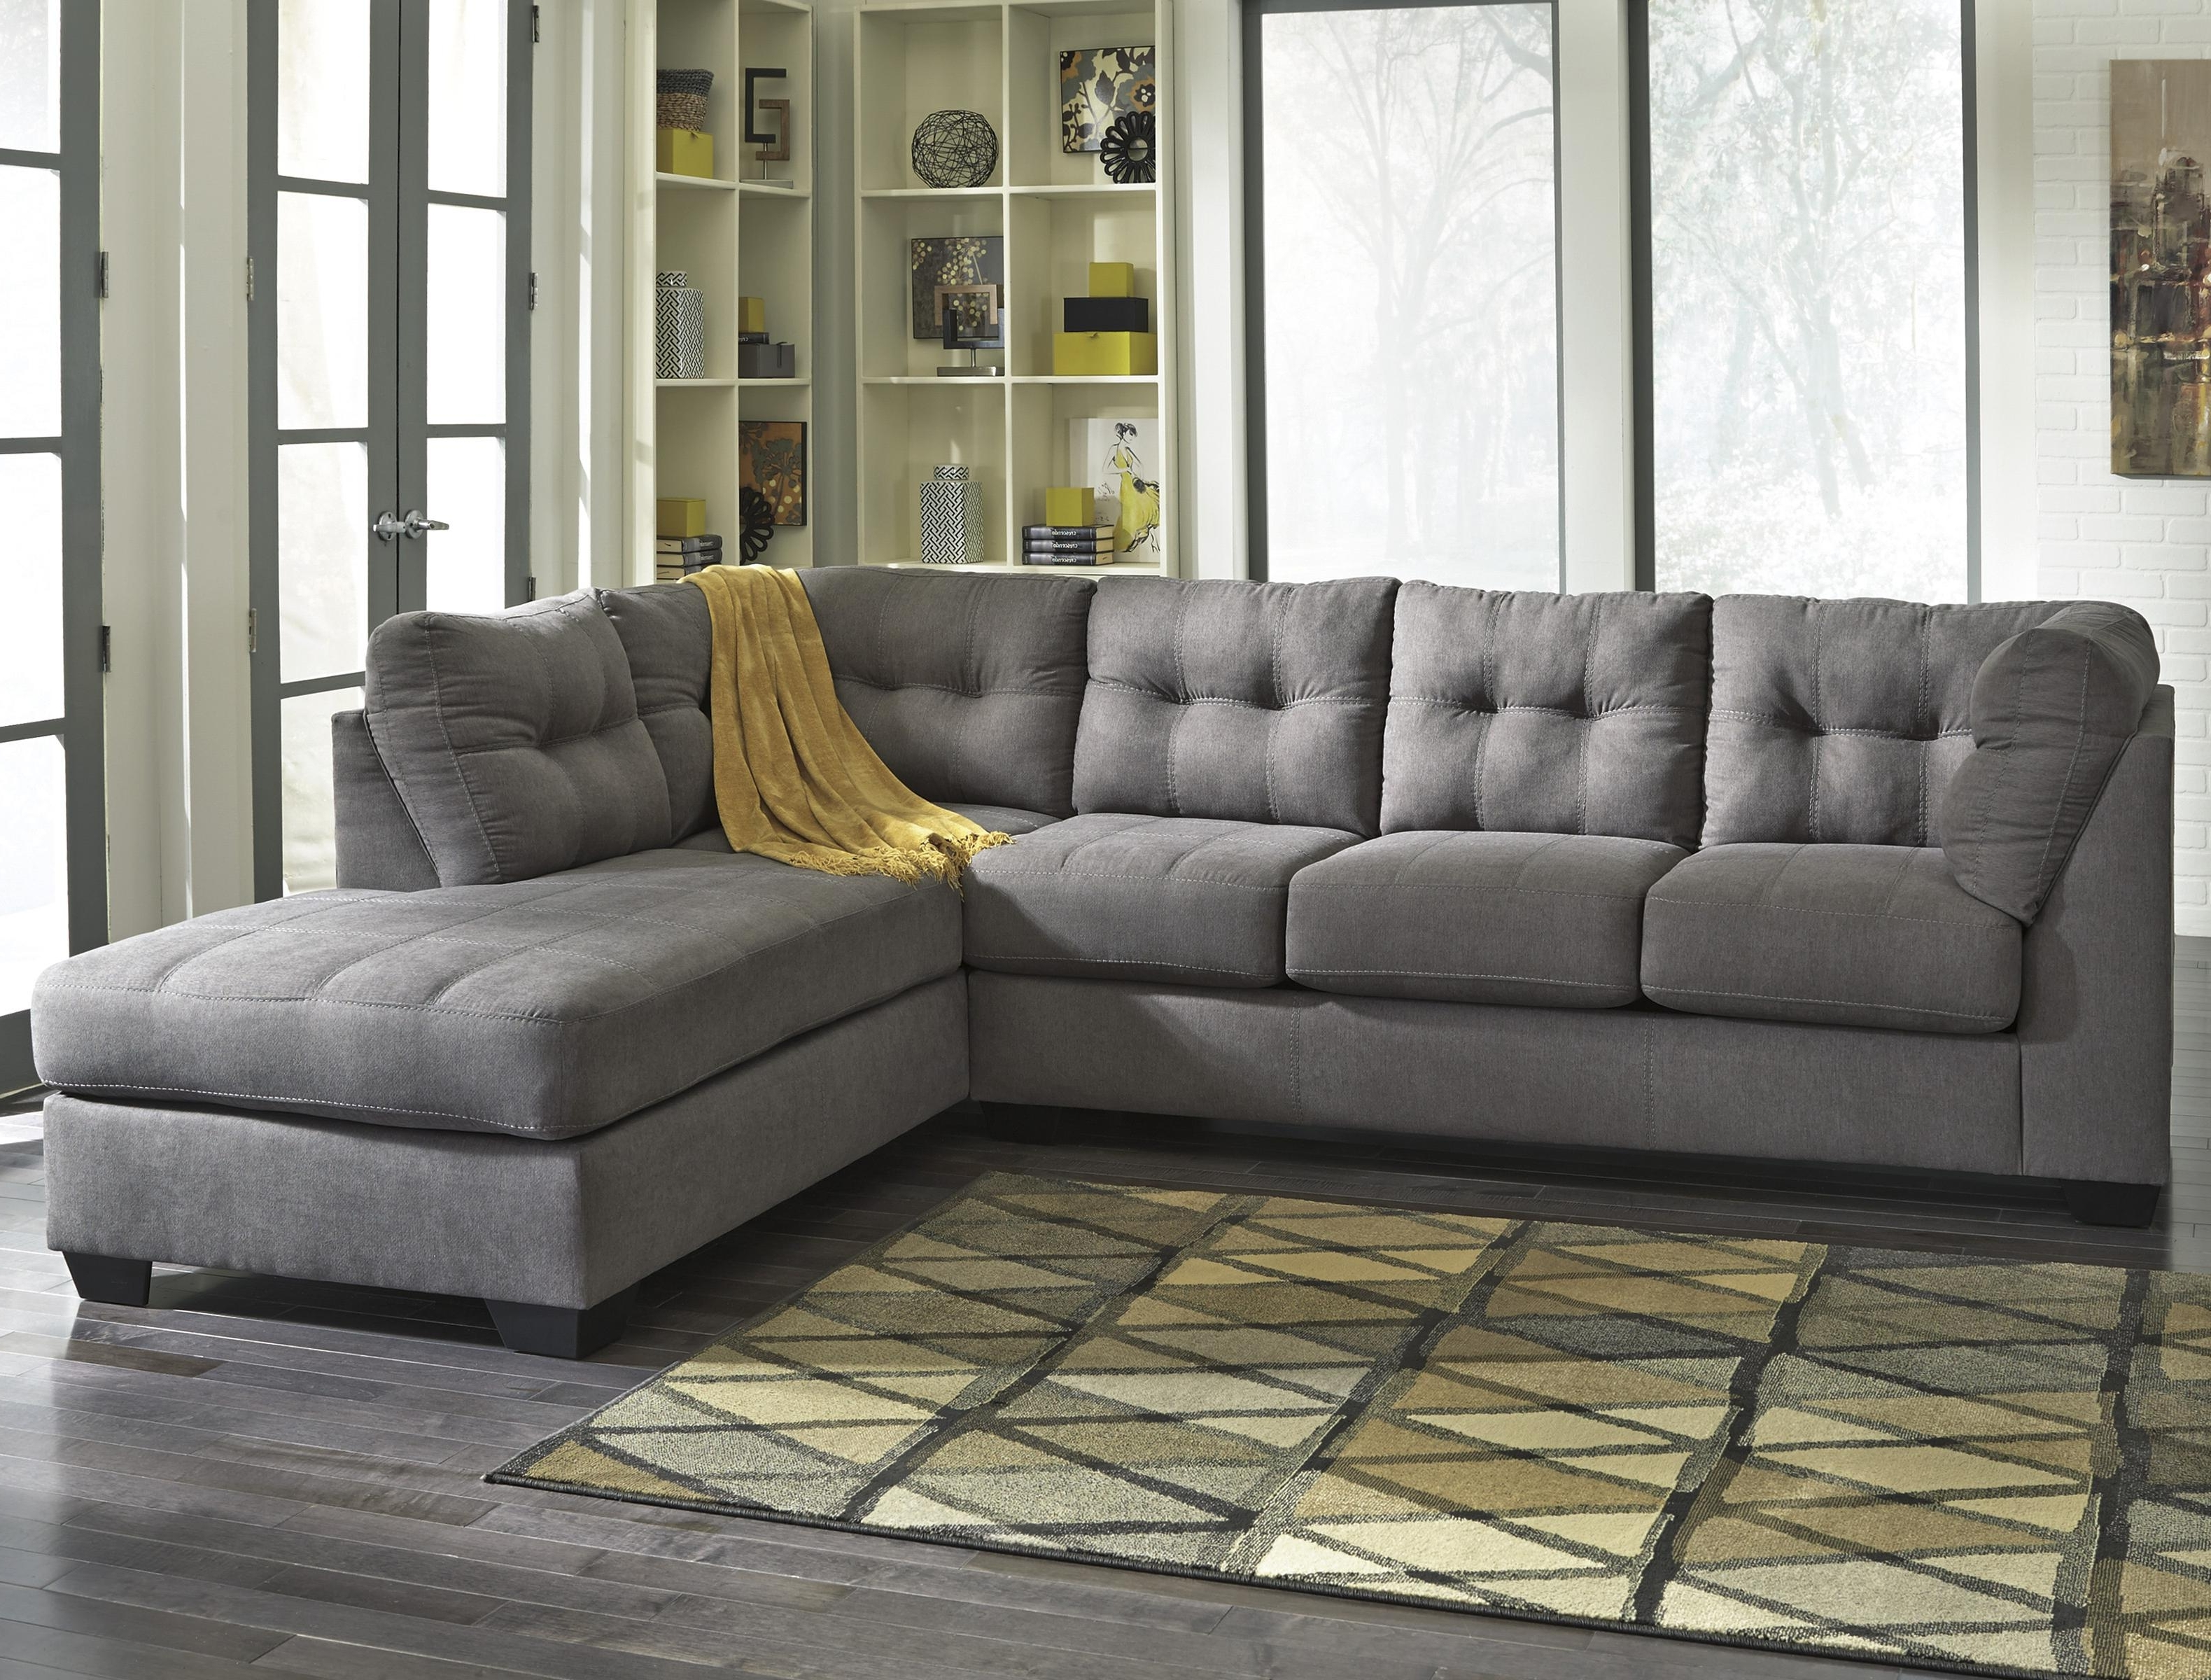 Sacramento Sectional Sofas Within Widely Used Sectional Sofas Sacramento – Hotelsbacau (View 6 of 15)